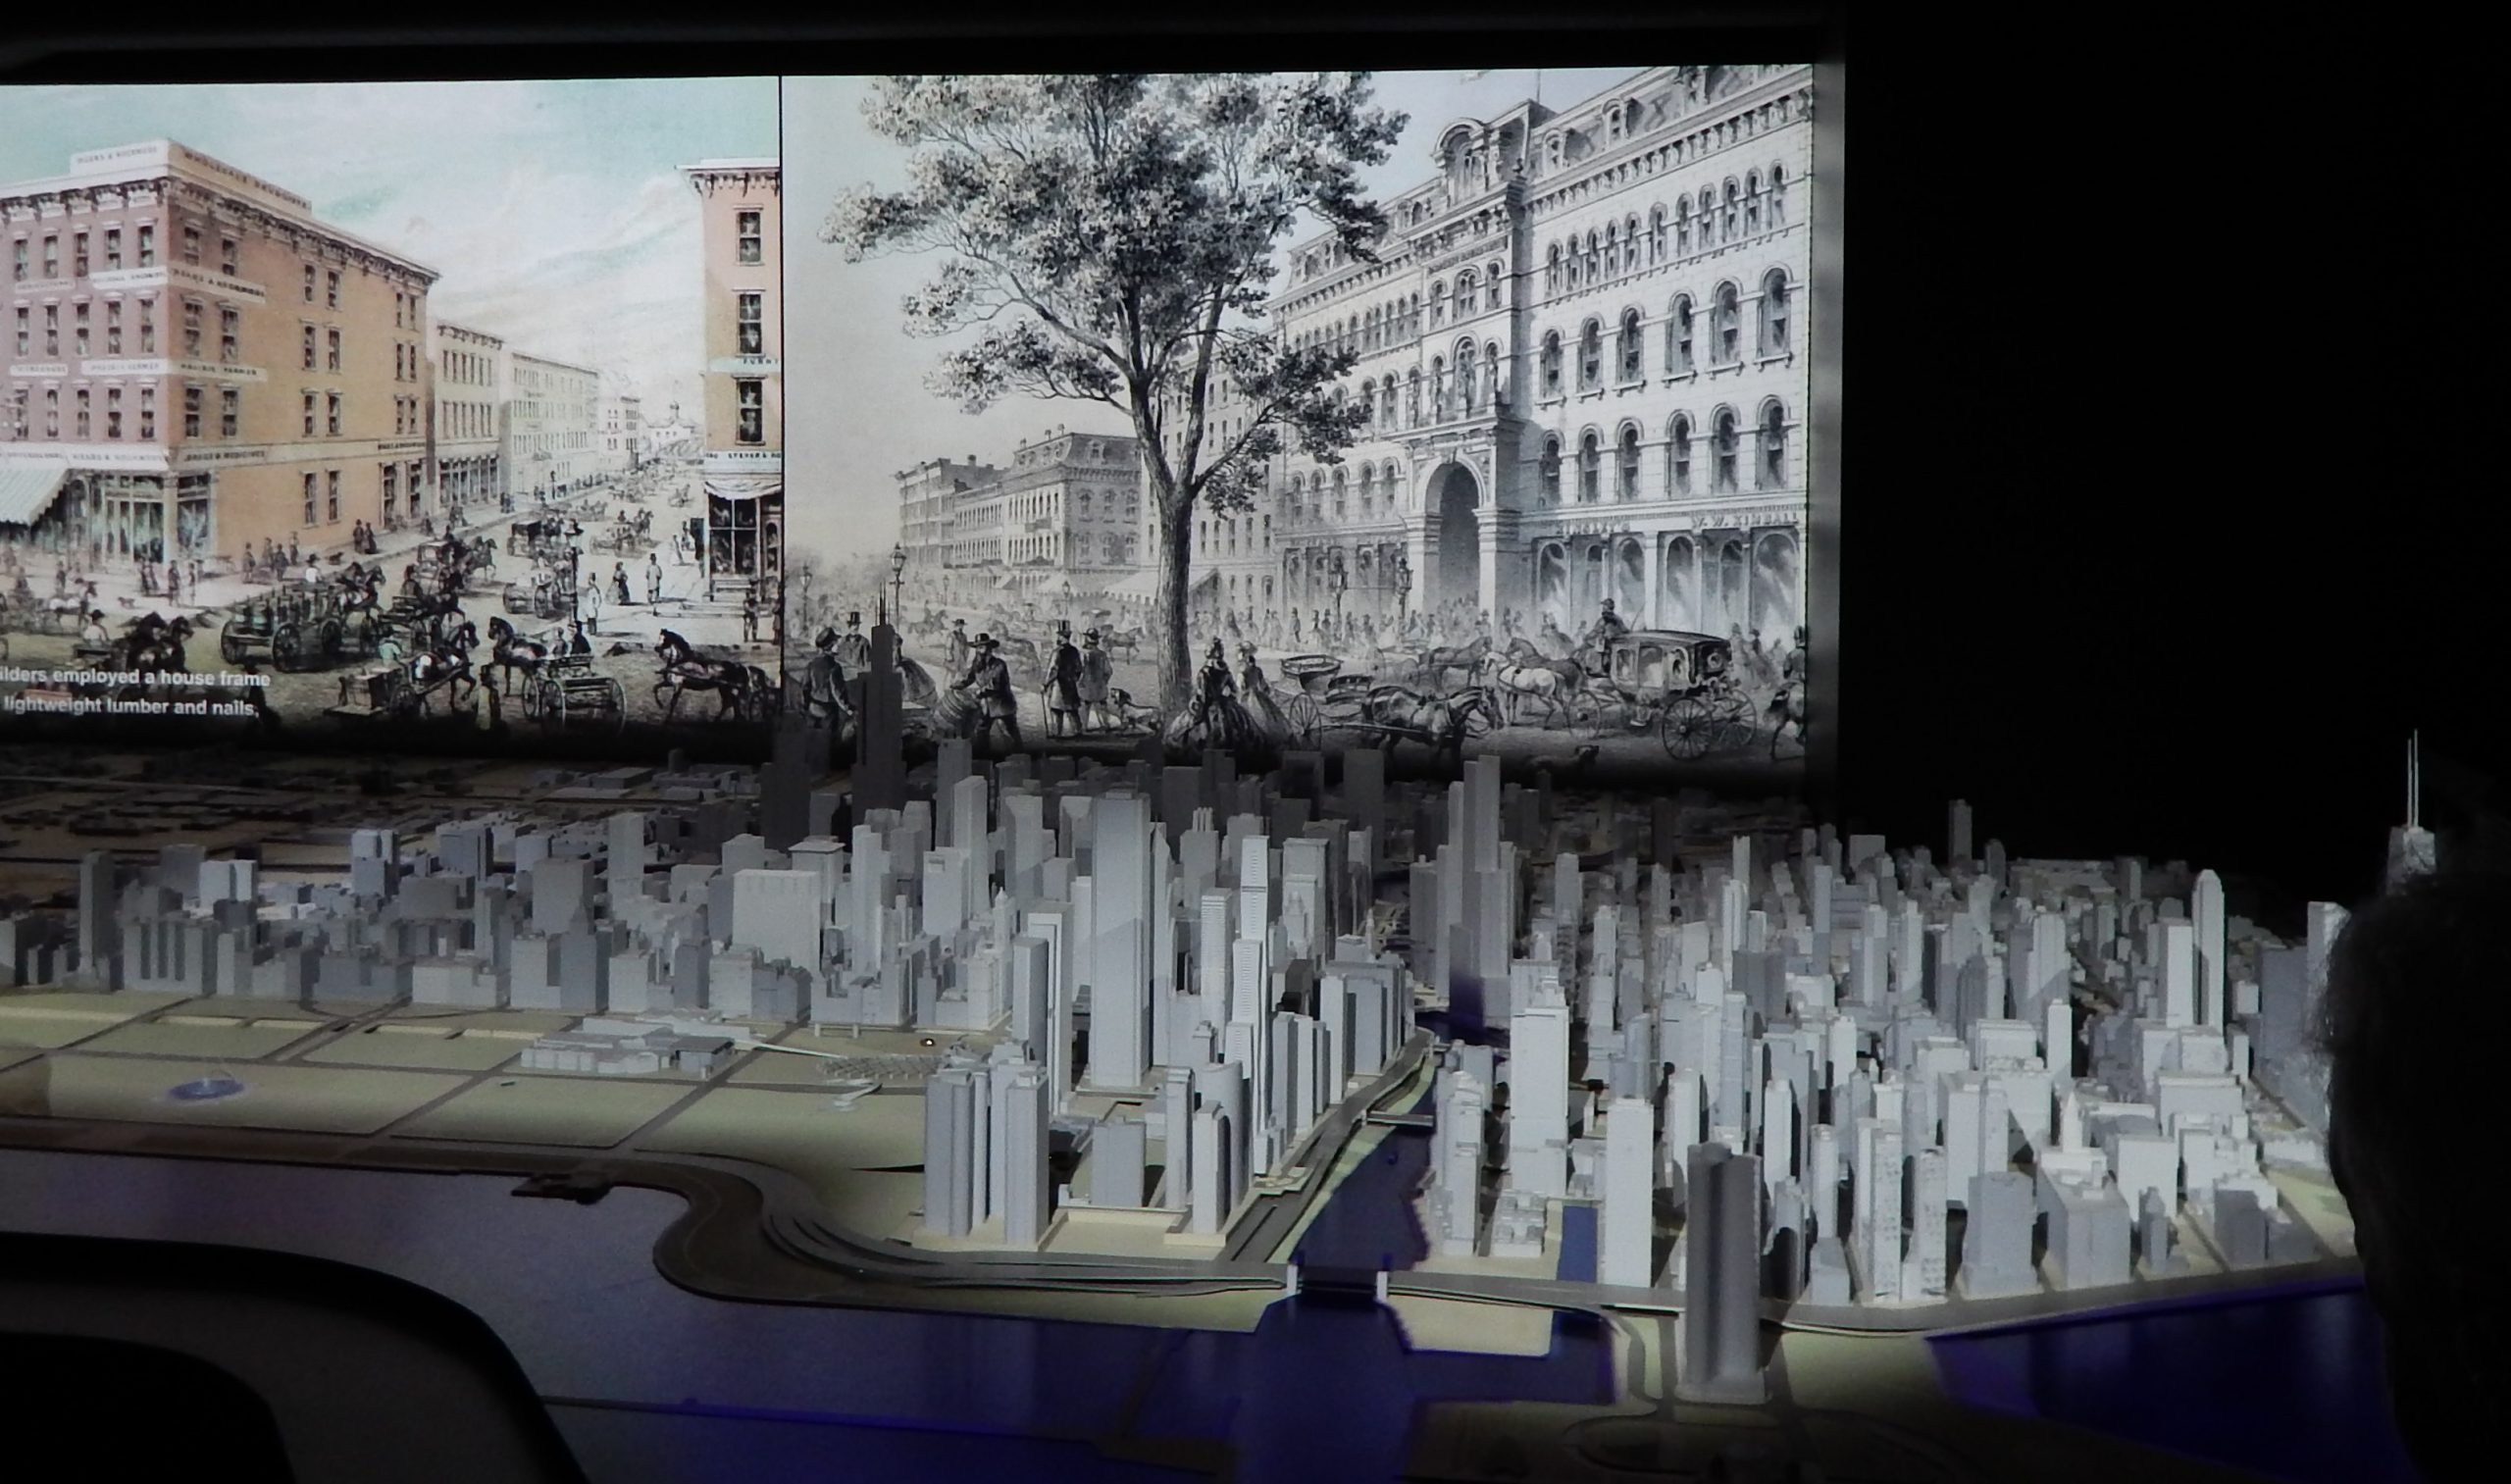 The Chicago Model in the foreground; the city's history on film, behind